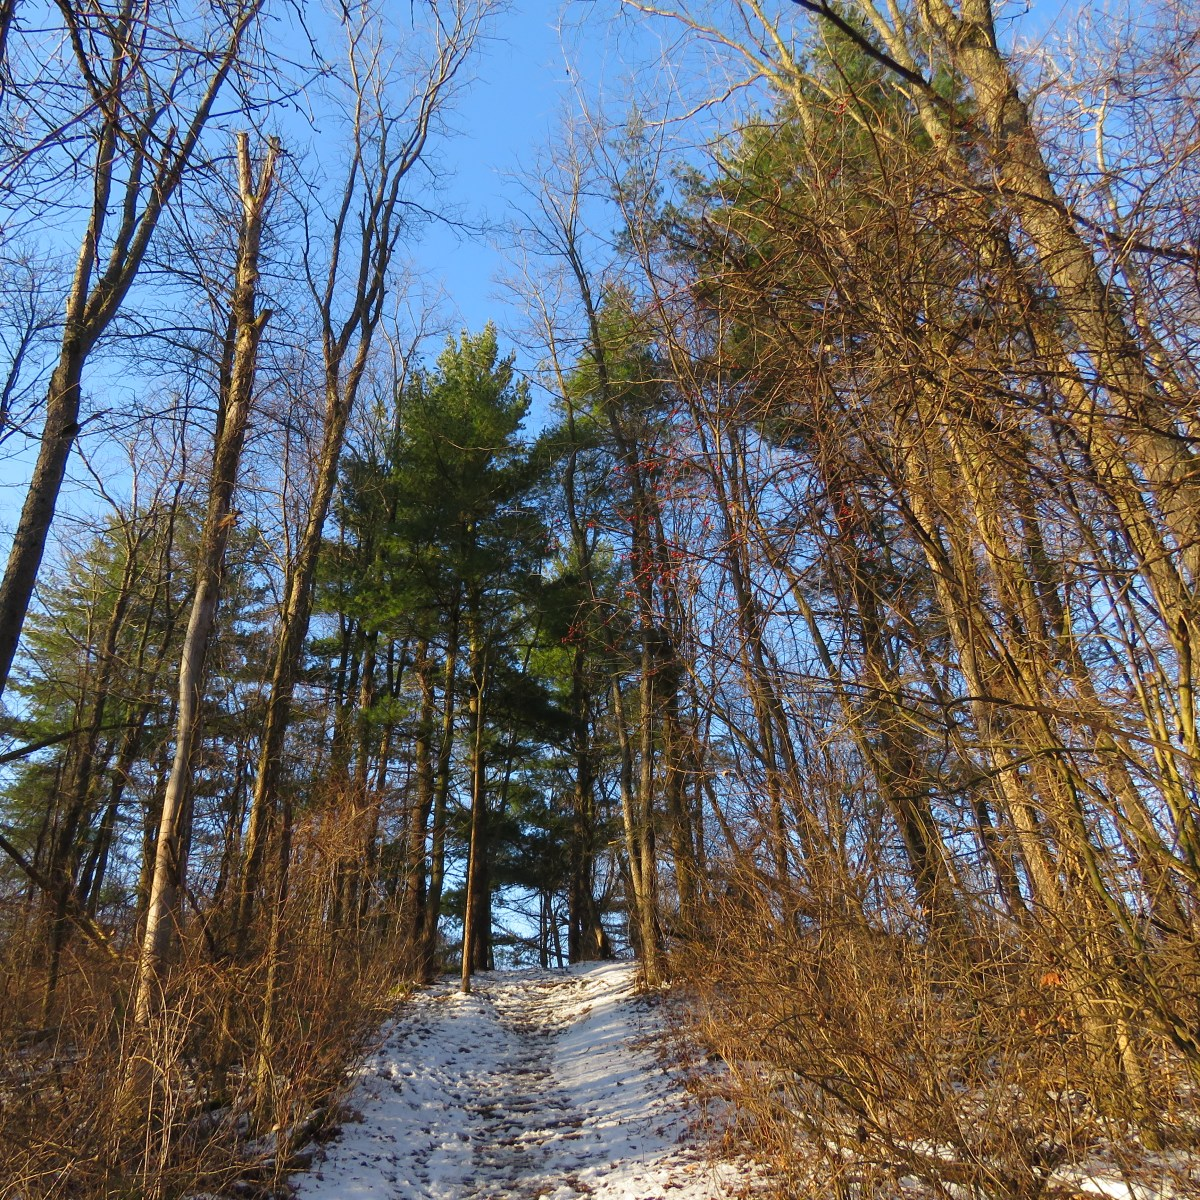 A snow-covered trail leads up a hill through the trees